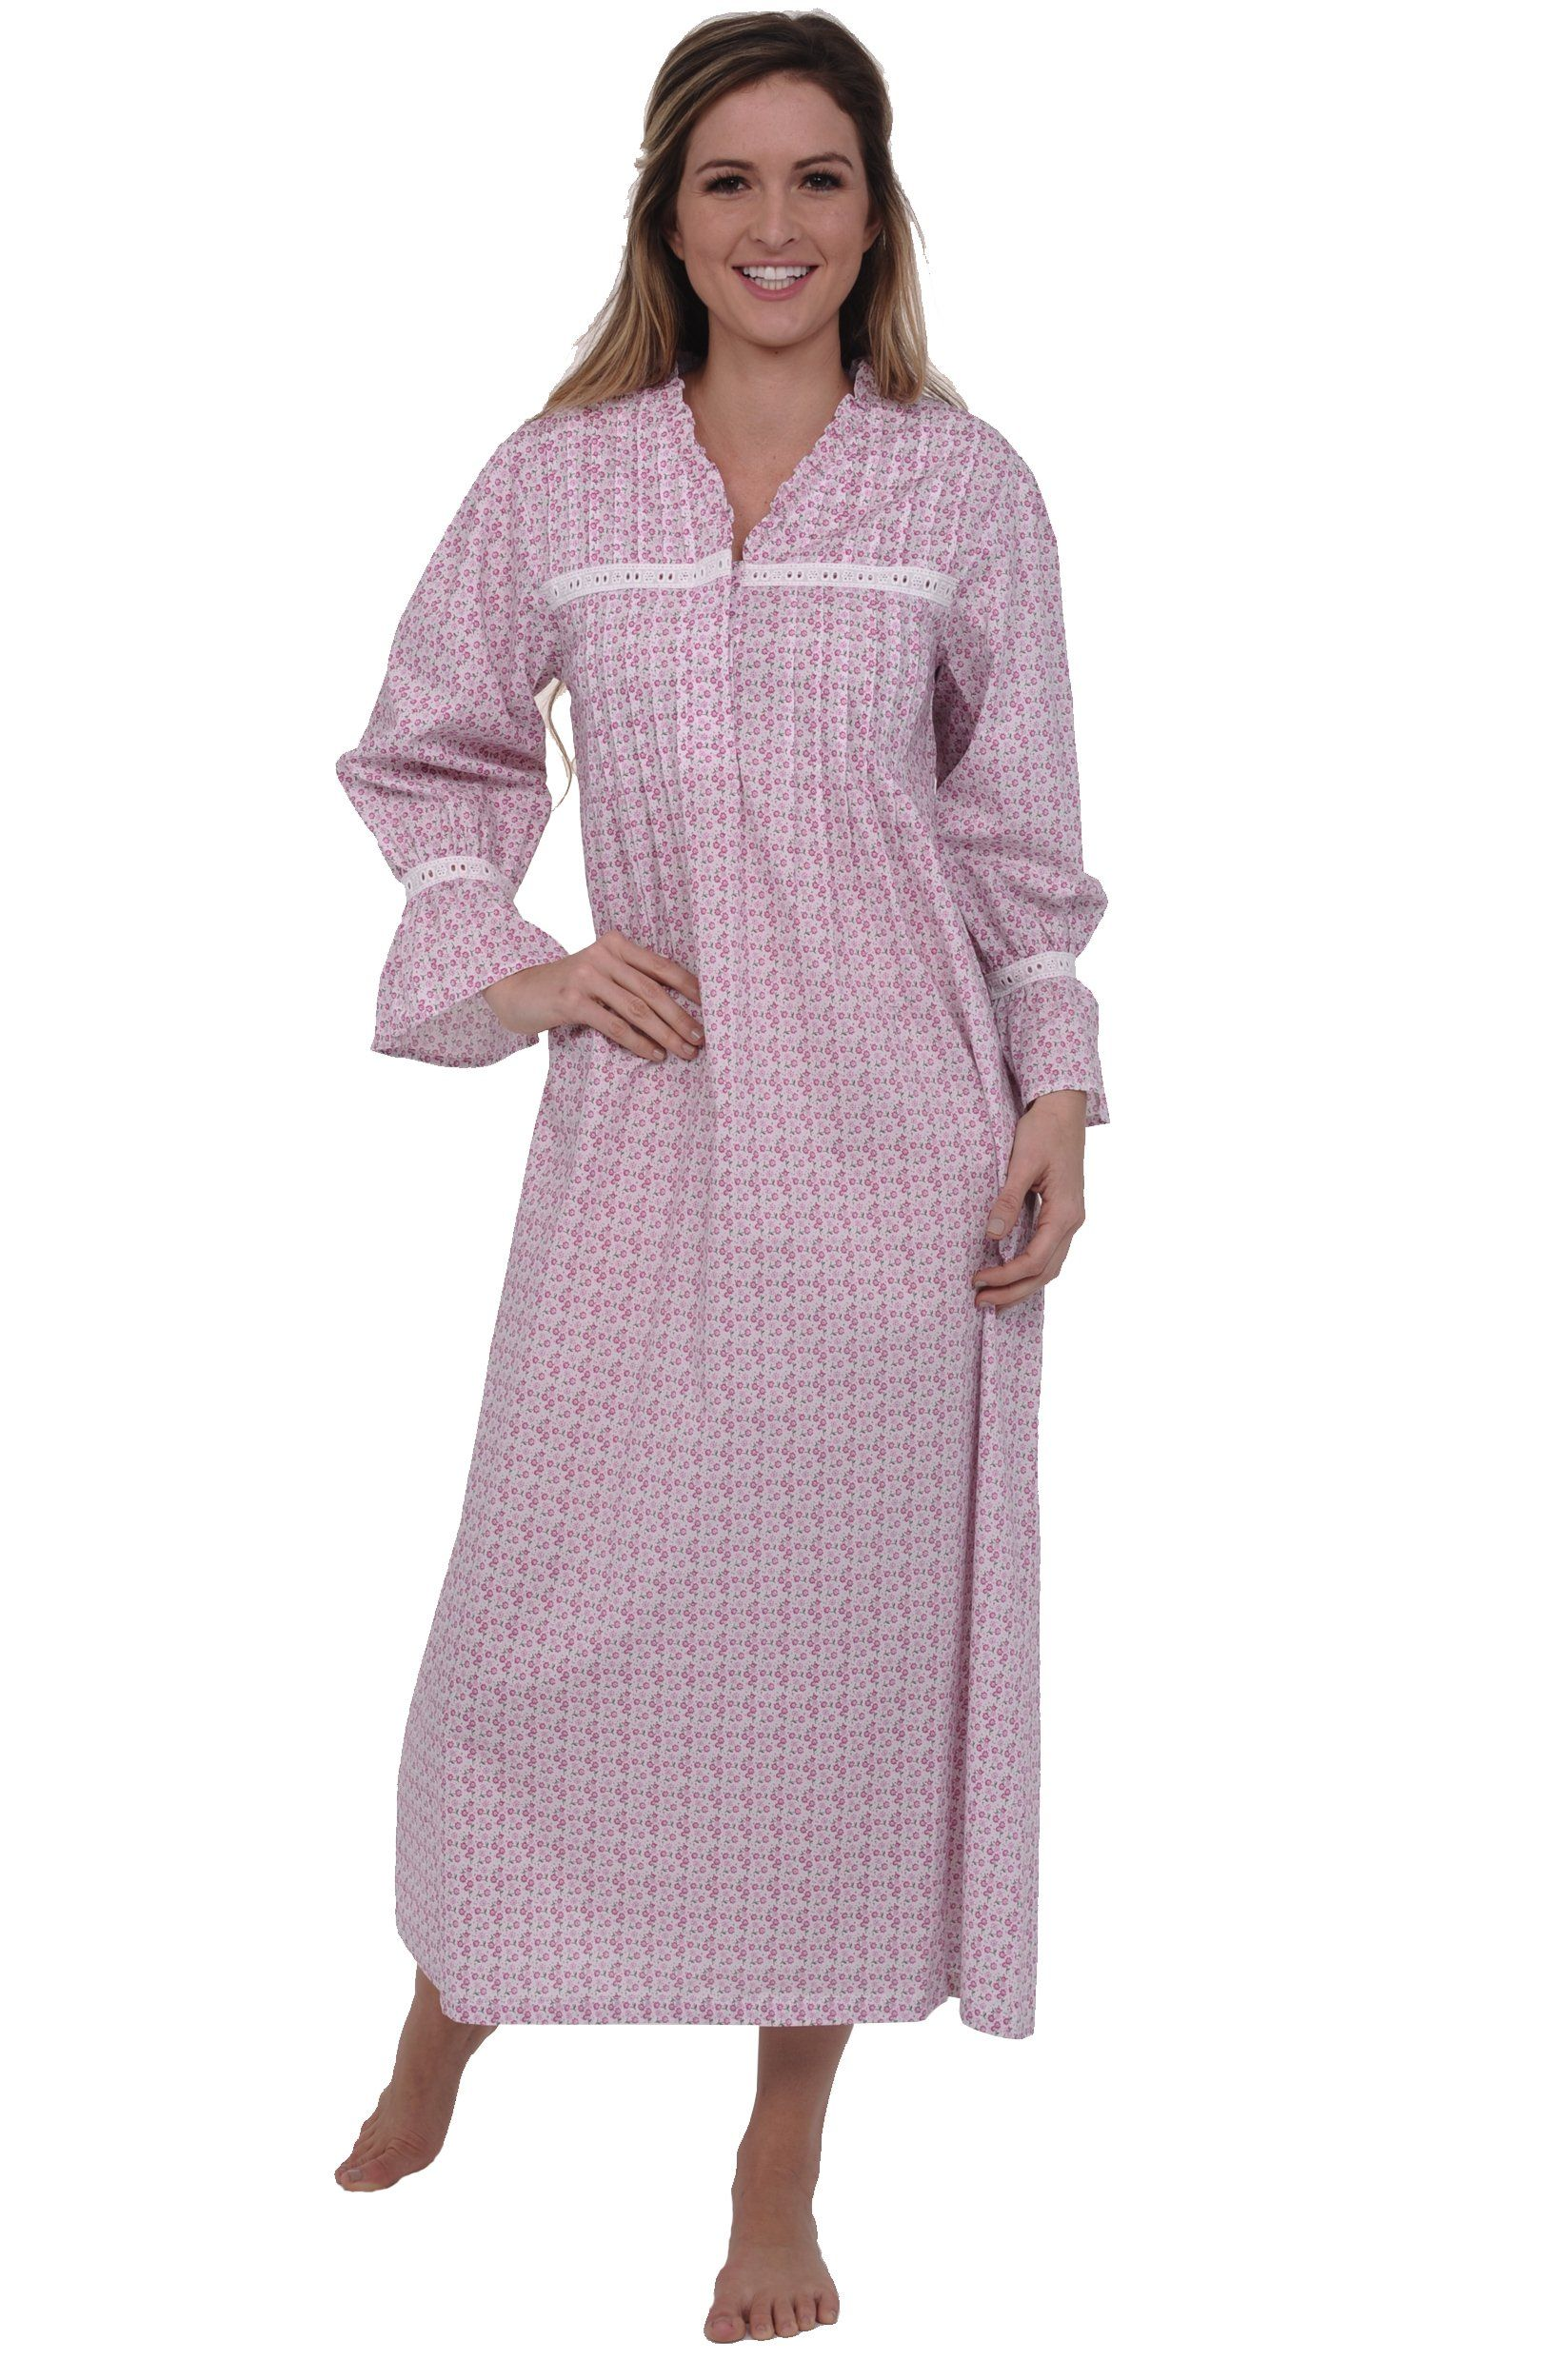 4e631a9056d8a Alexander Del Rossa Women's Romeo and Juliet Bell Sleeve Victorian Nightgown  at Amazon Women's Clothing store: White Night Gown